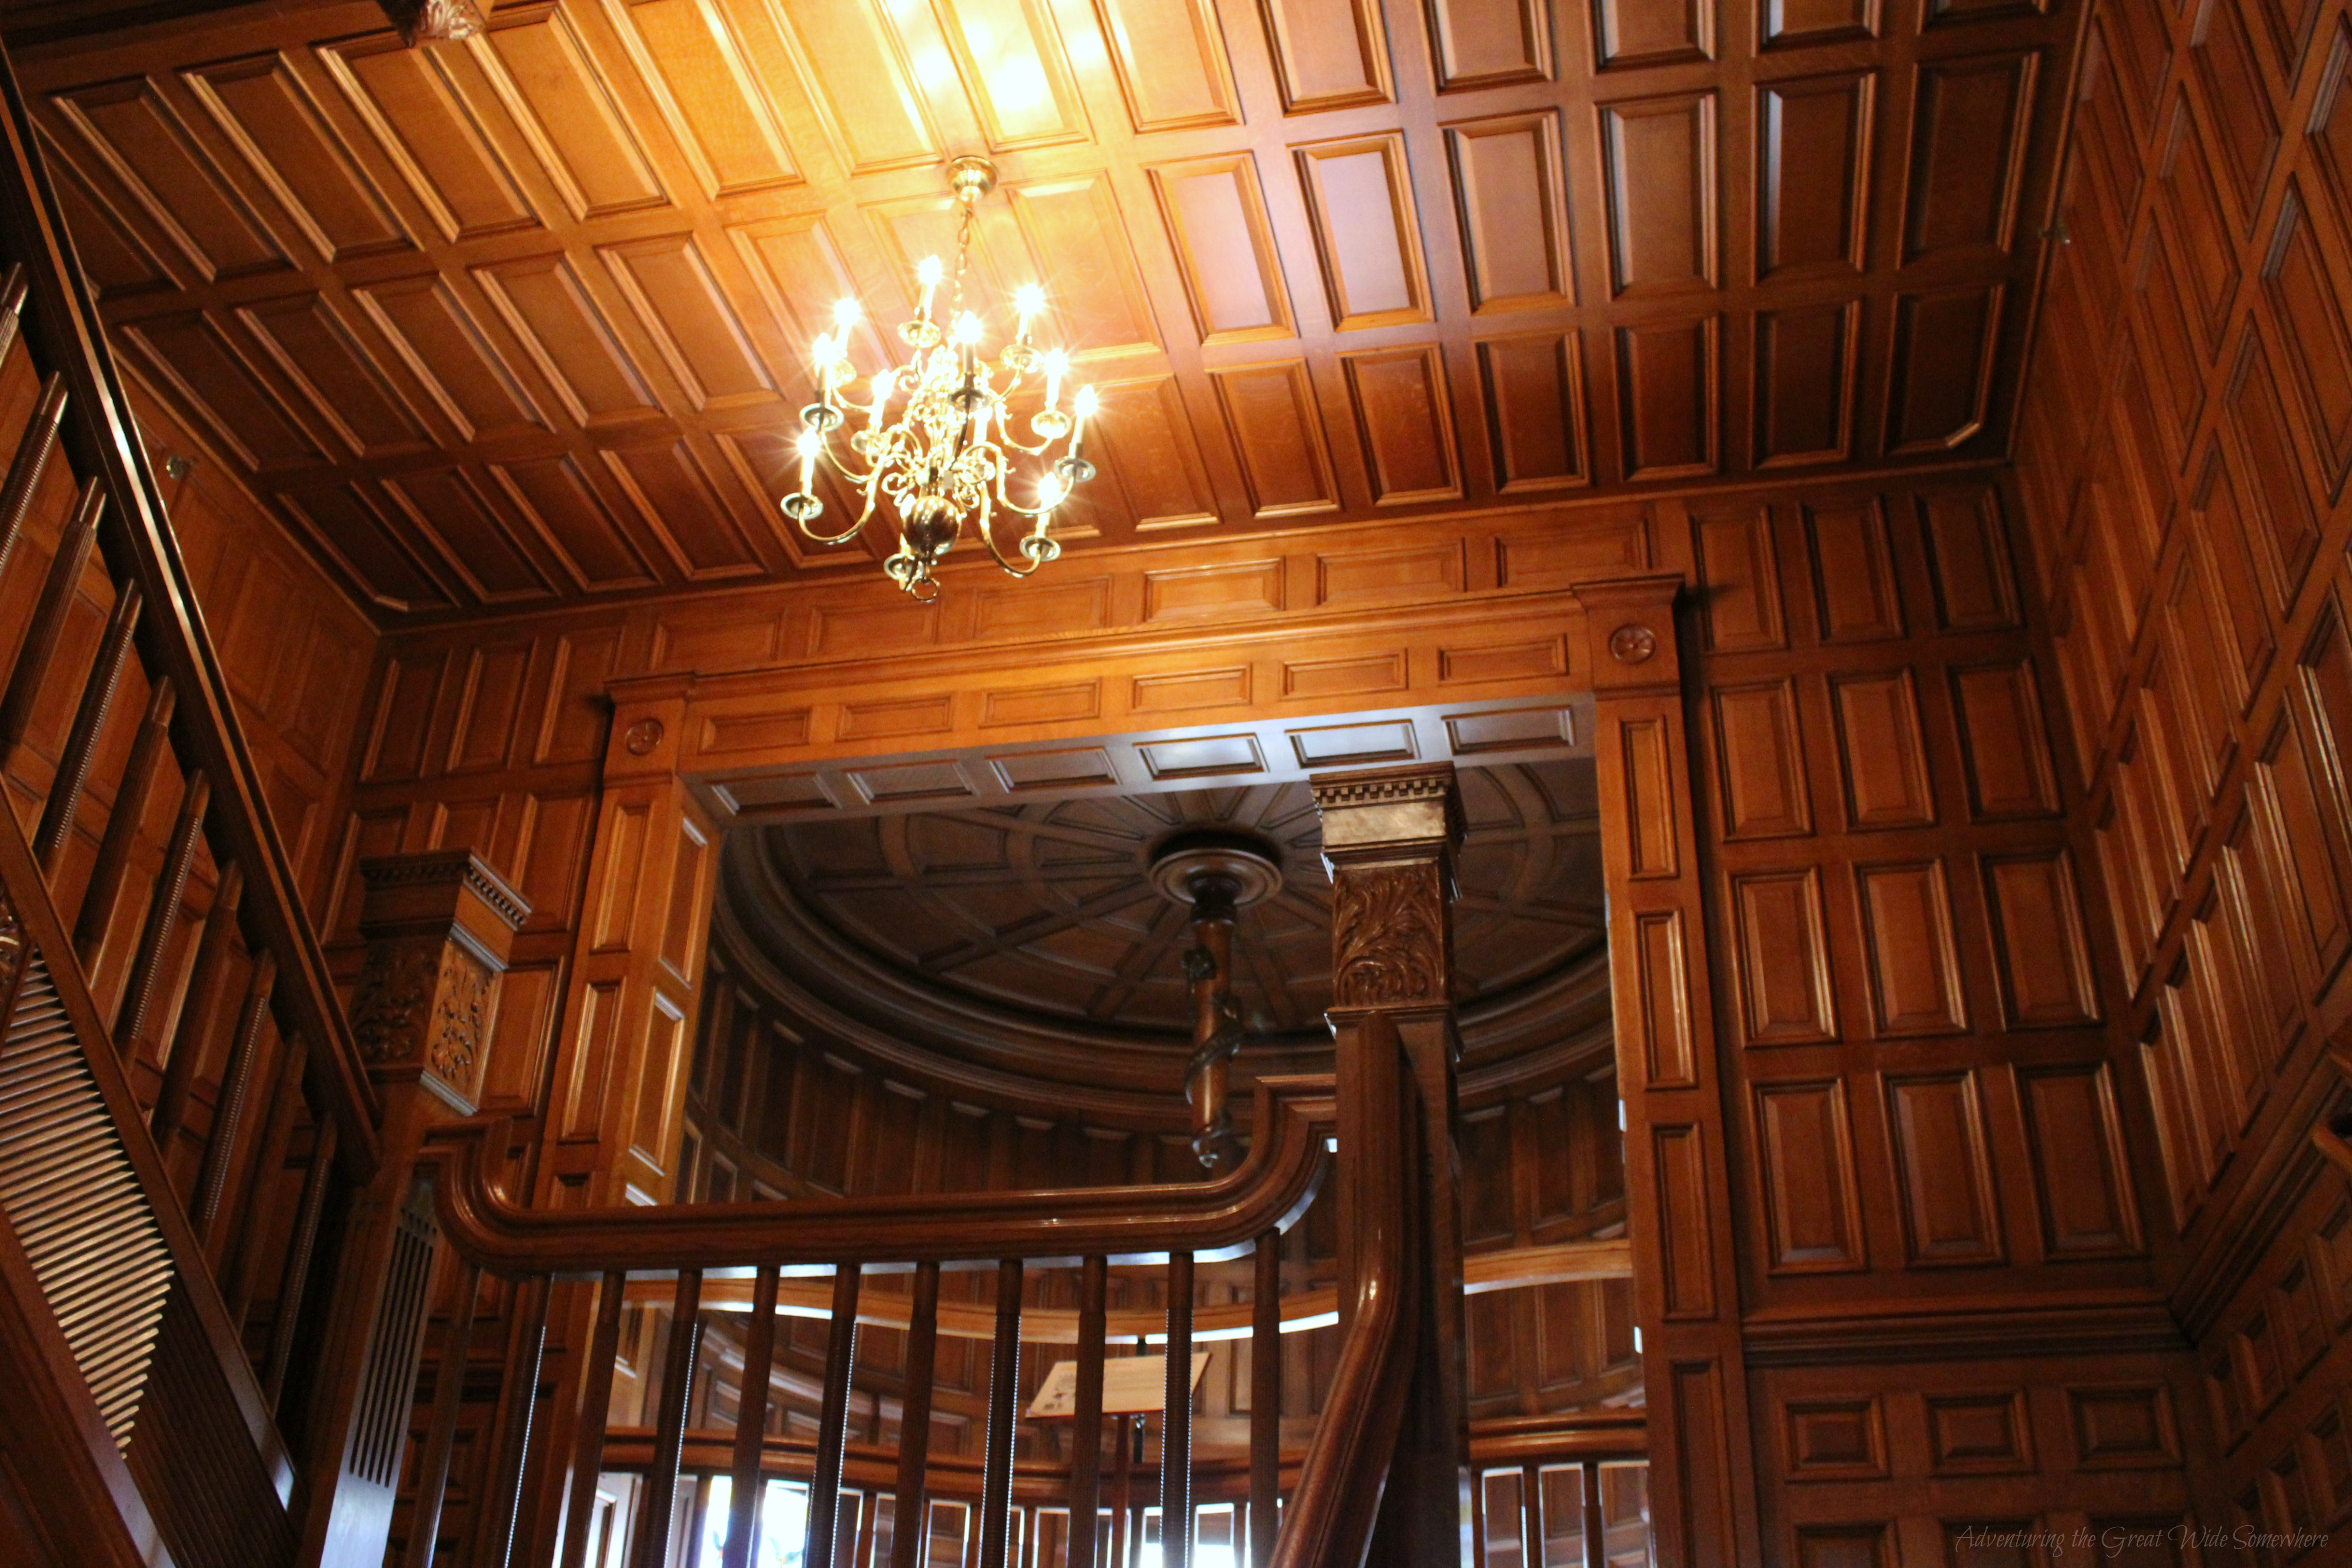 Paneled Staircase Majestic Wood Paneled Staircases Abound At Craigdarroch